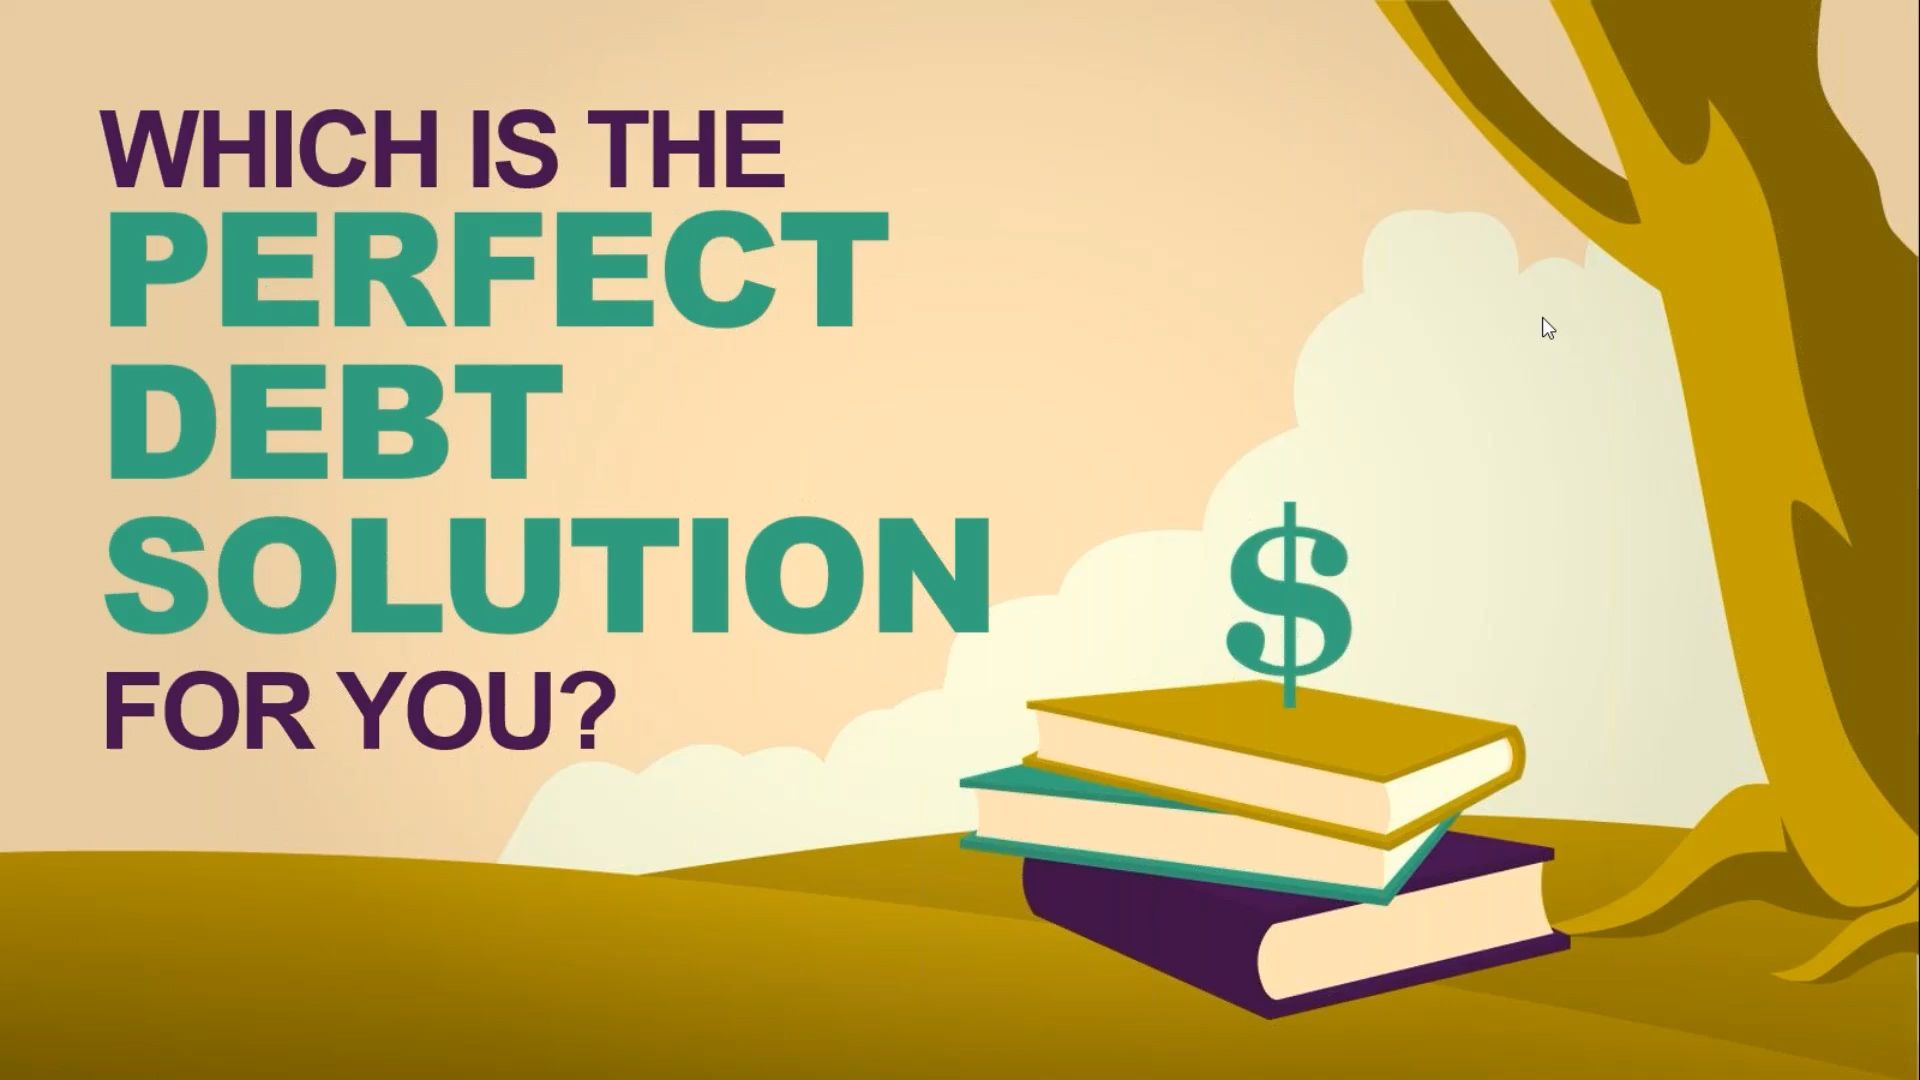 Which is the Perfect Debt Solution for you